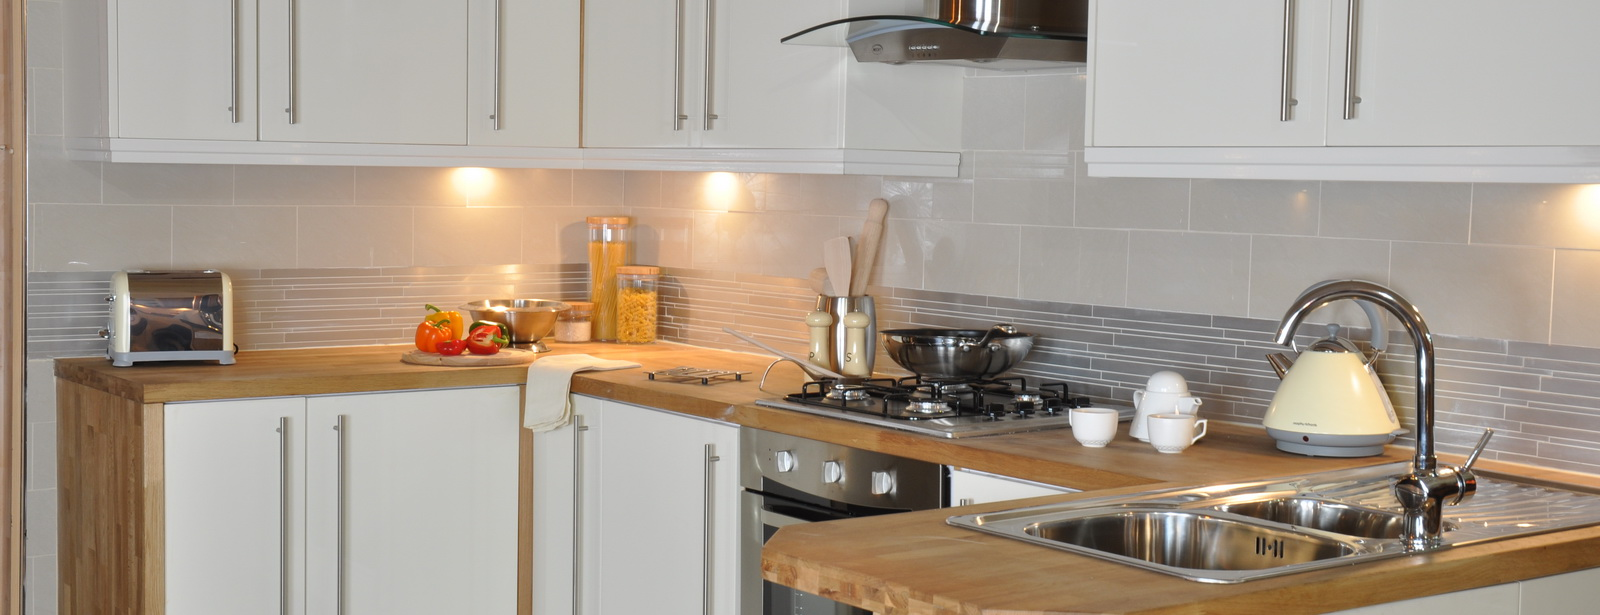 Kitchens manchester cheap kitchens manchester kitchen for Cheap fitted kitchens